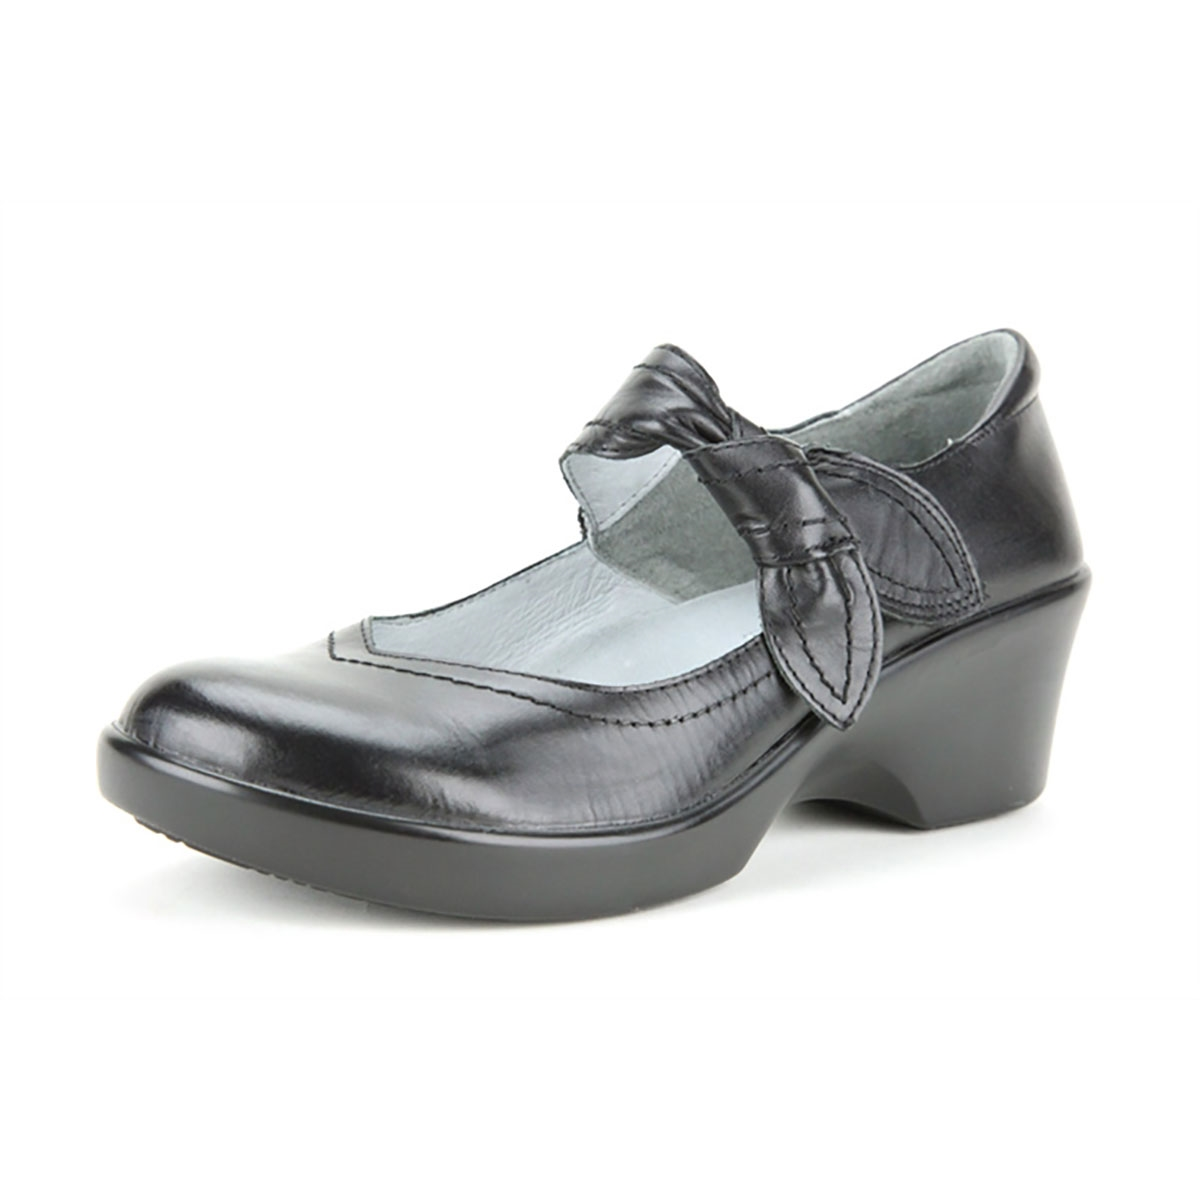 Alegria Ella Black Napa dress mary jane shoes for women · View Larger Photo  Email ...